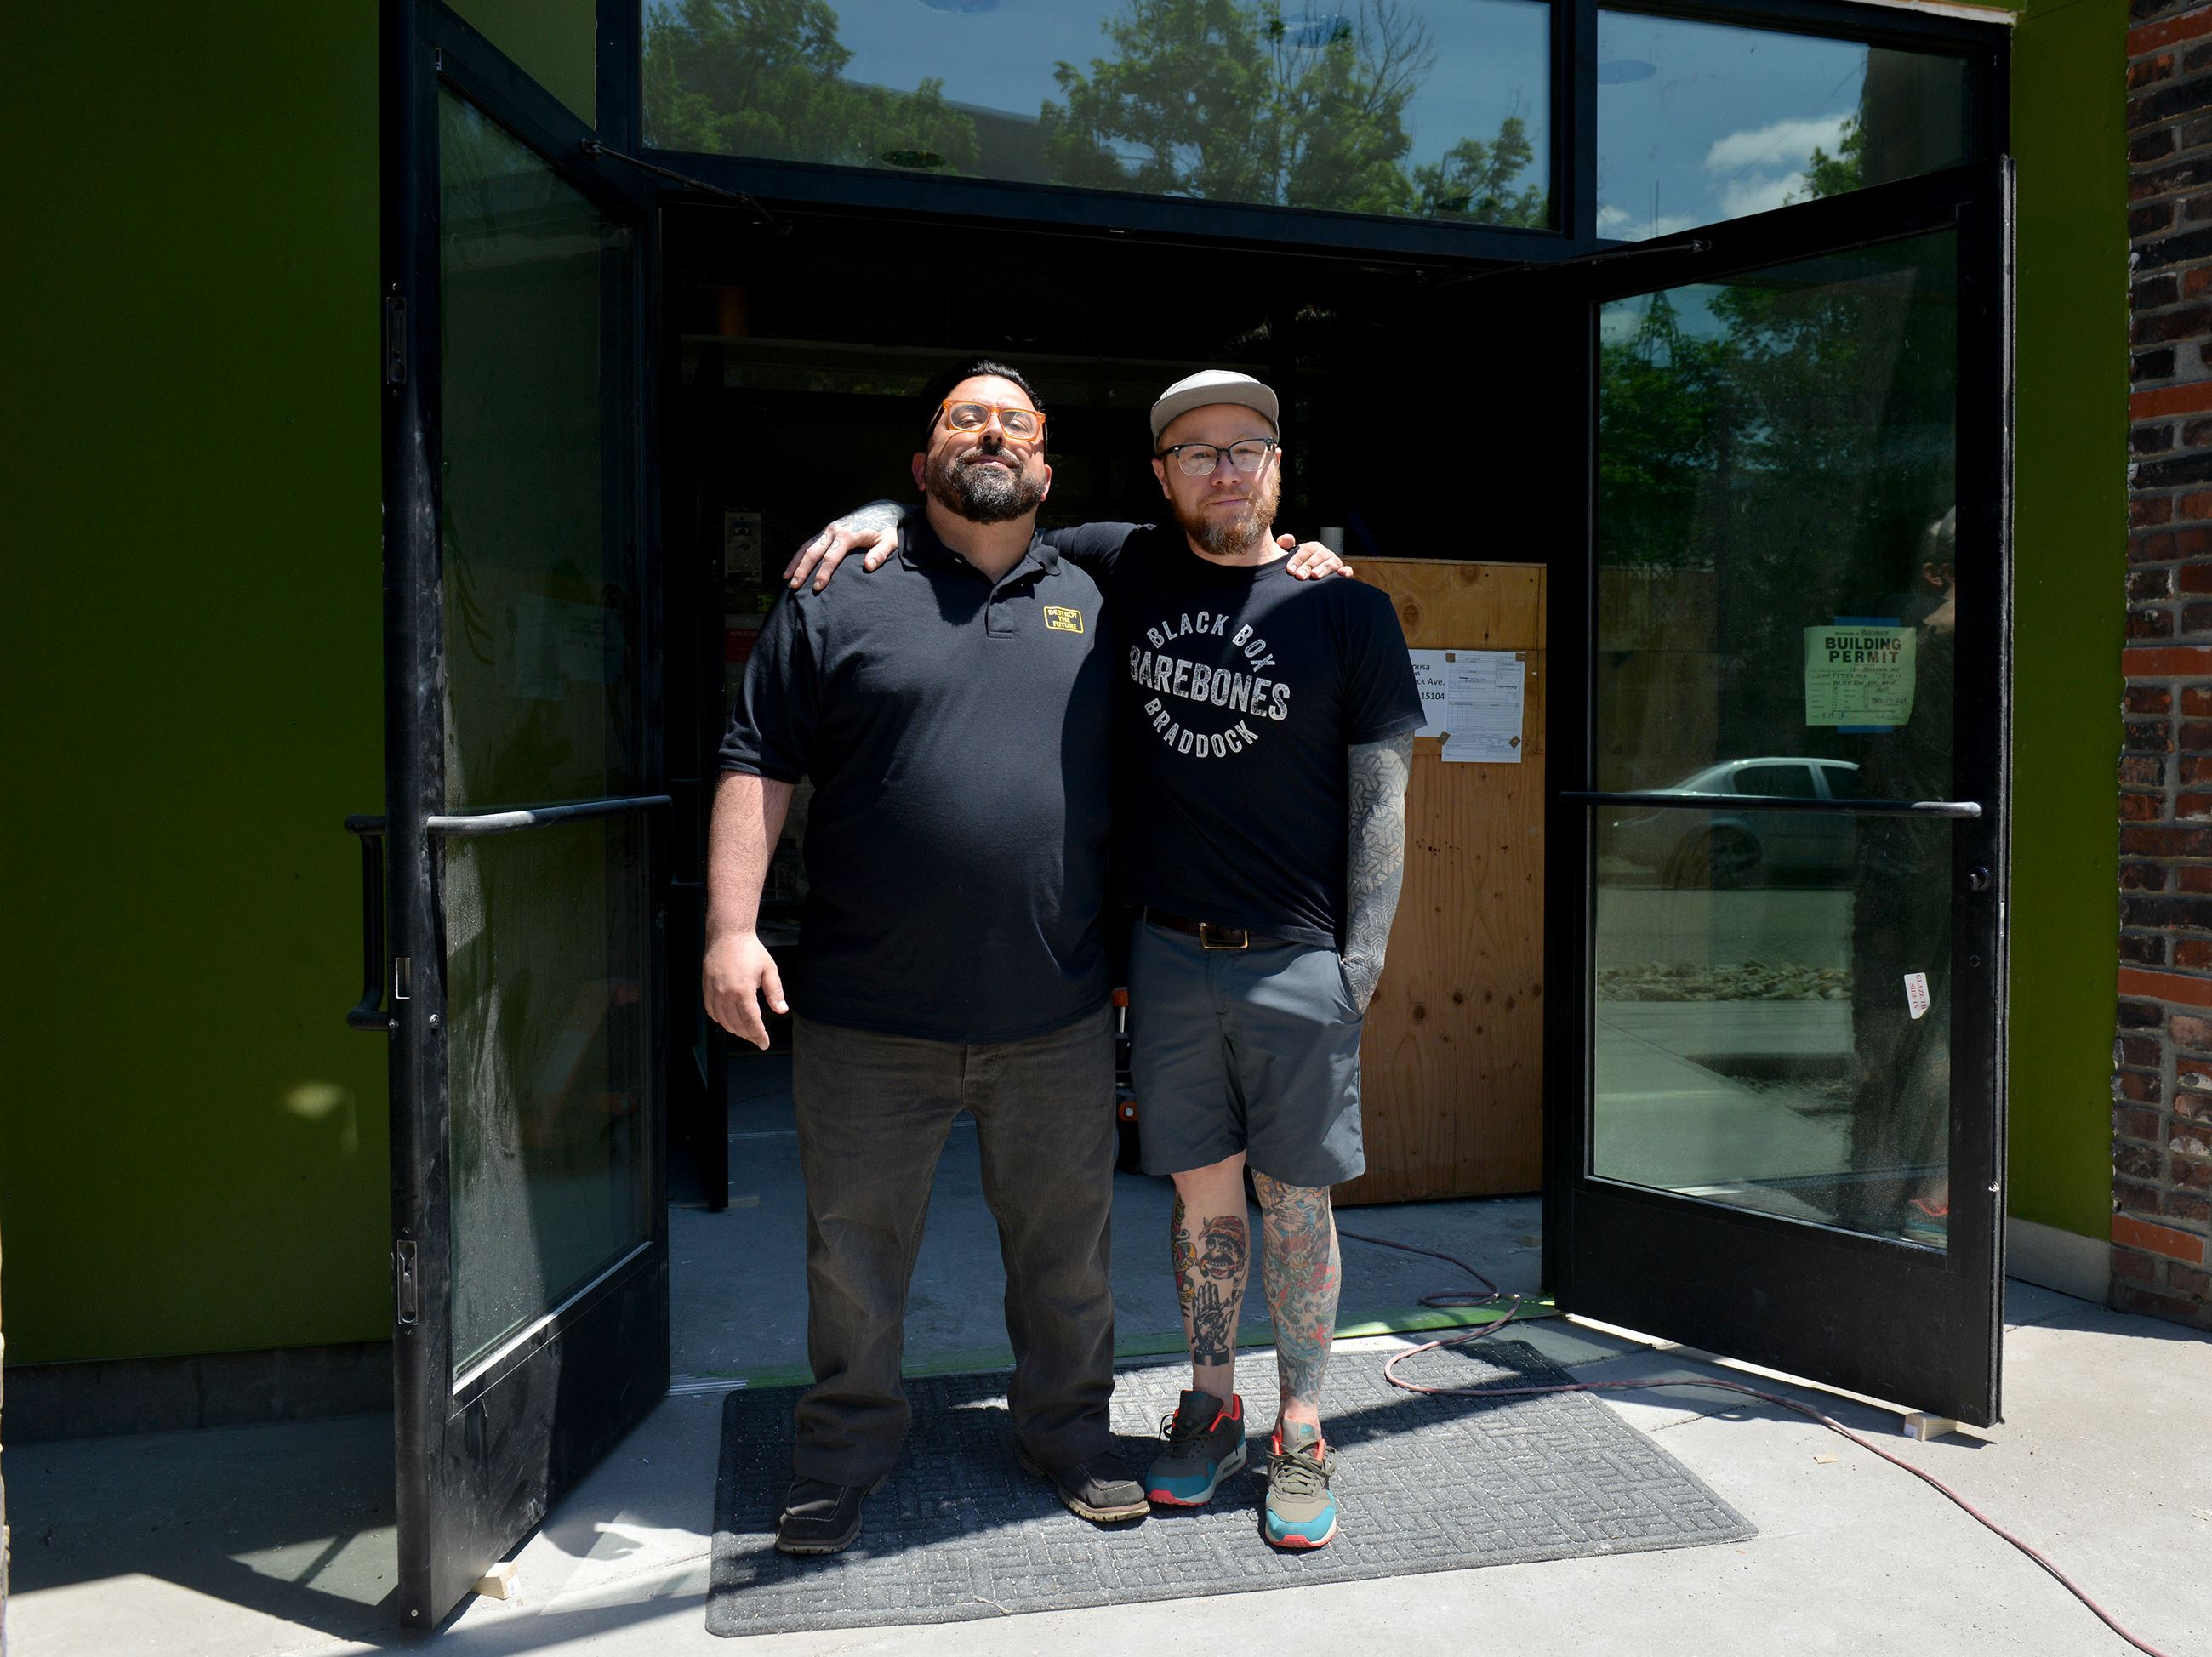 20170609ppSuperiorMotors2LOC-1 From left, Chris Clark, general manager and Kevin Sousa, owner of Superior Motors at the main entrance to the Braddock restaurant.